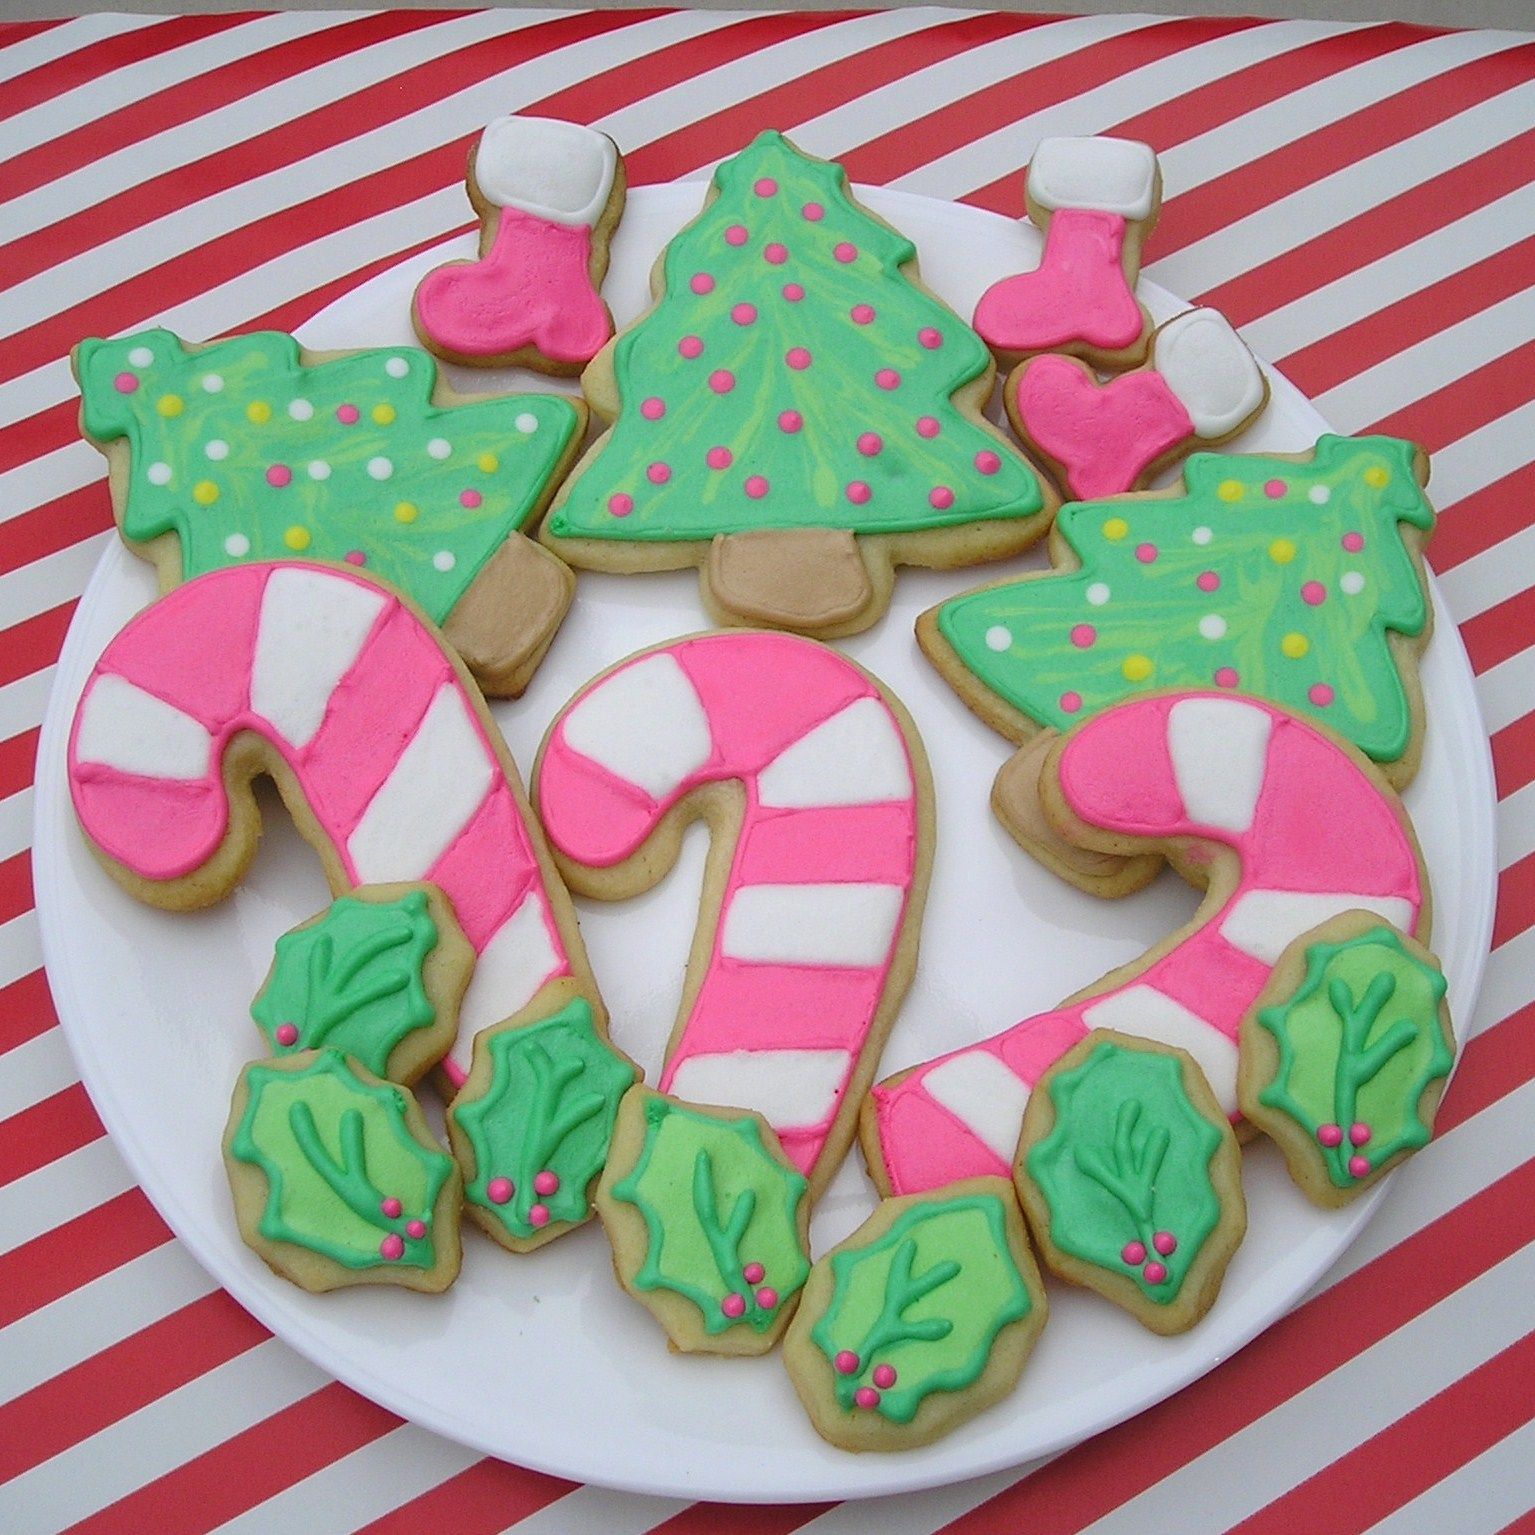 friday december 23 2011 - How To Decorate Christmas Cookies With Royal Icing